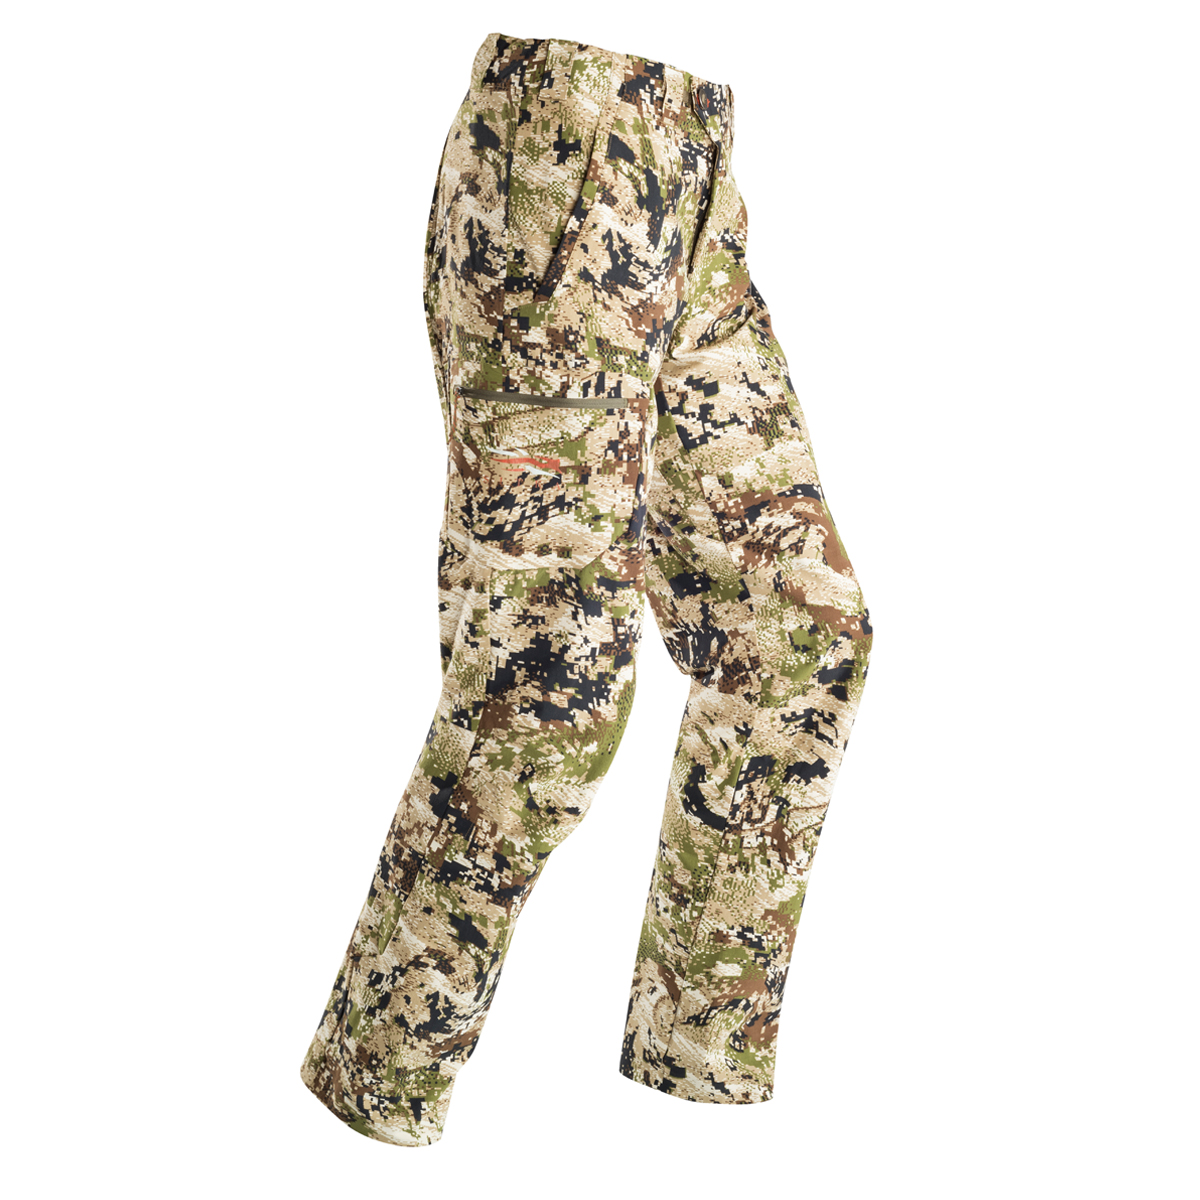 The SITKA Ascent Pants in Subalpine